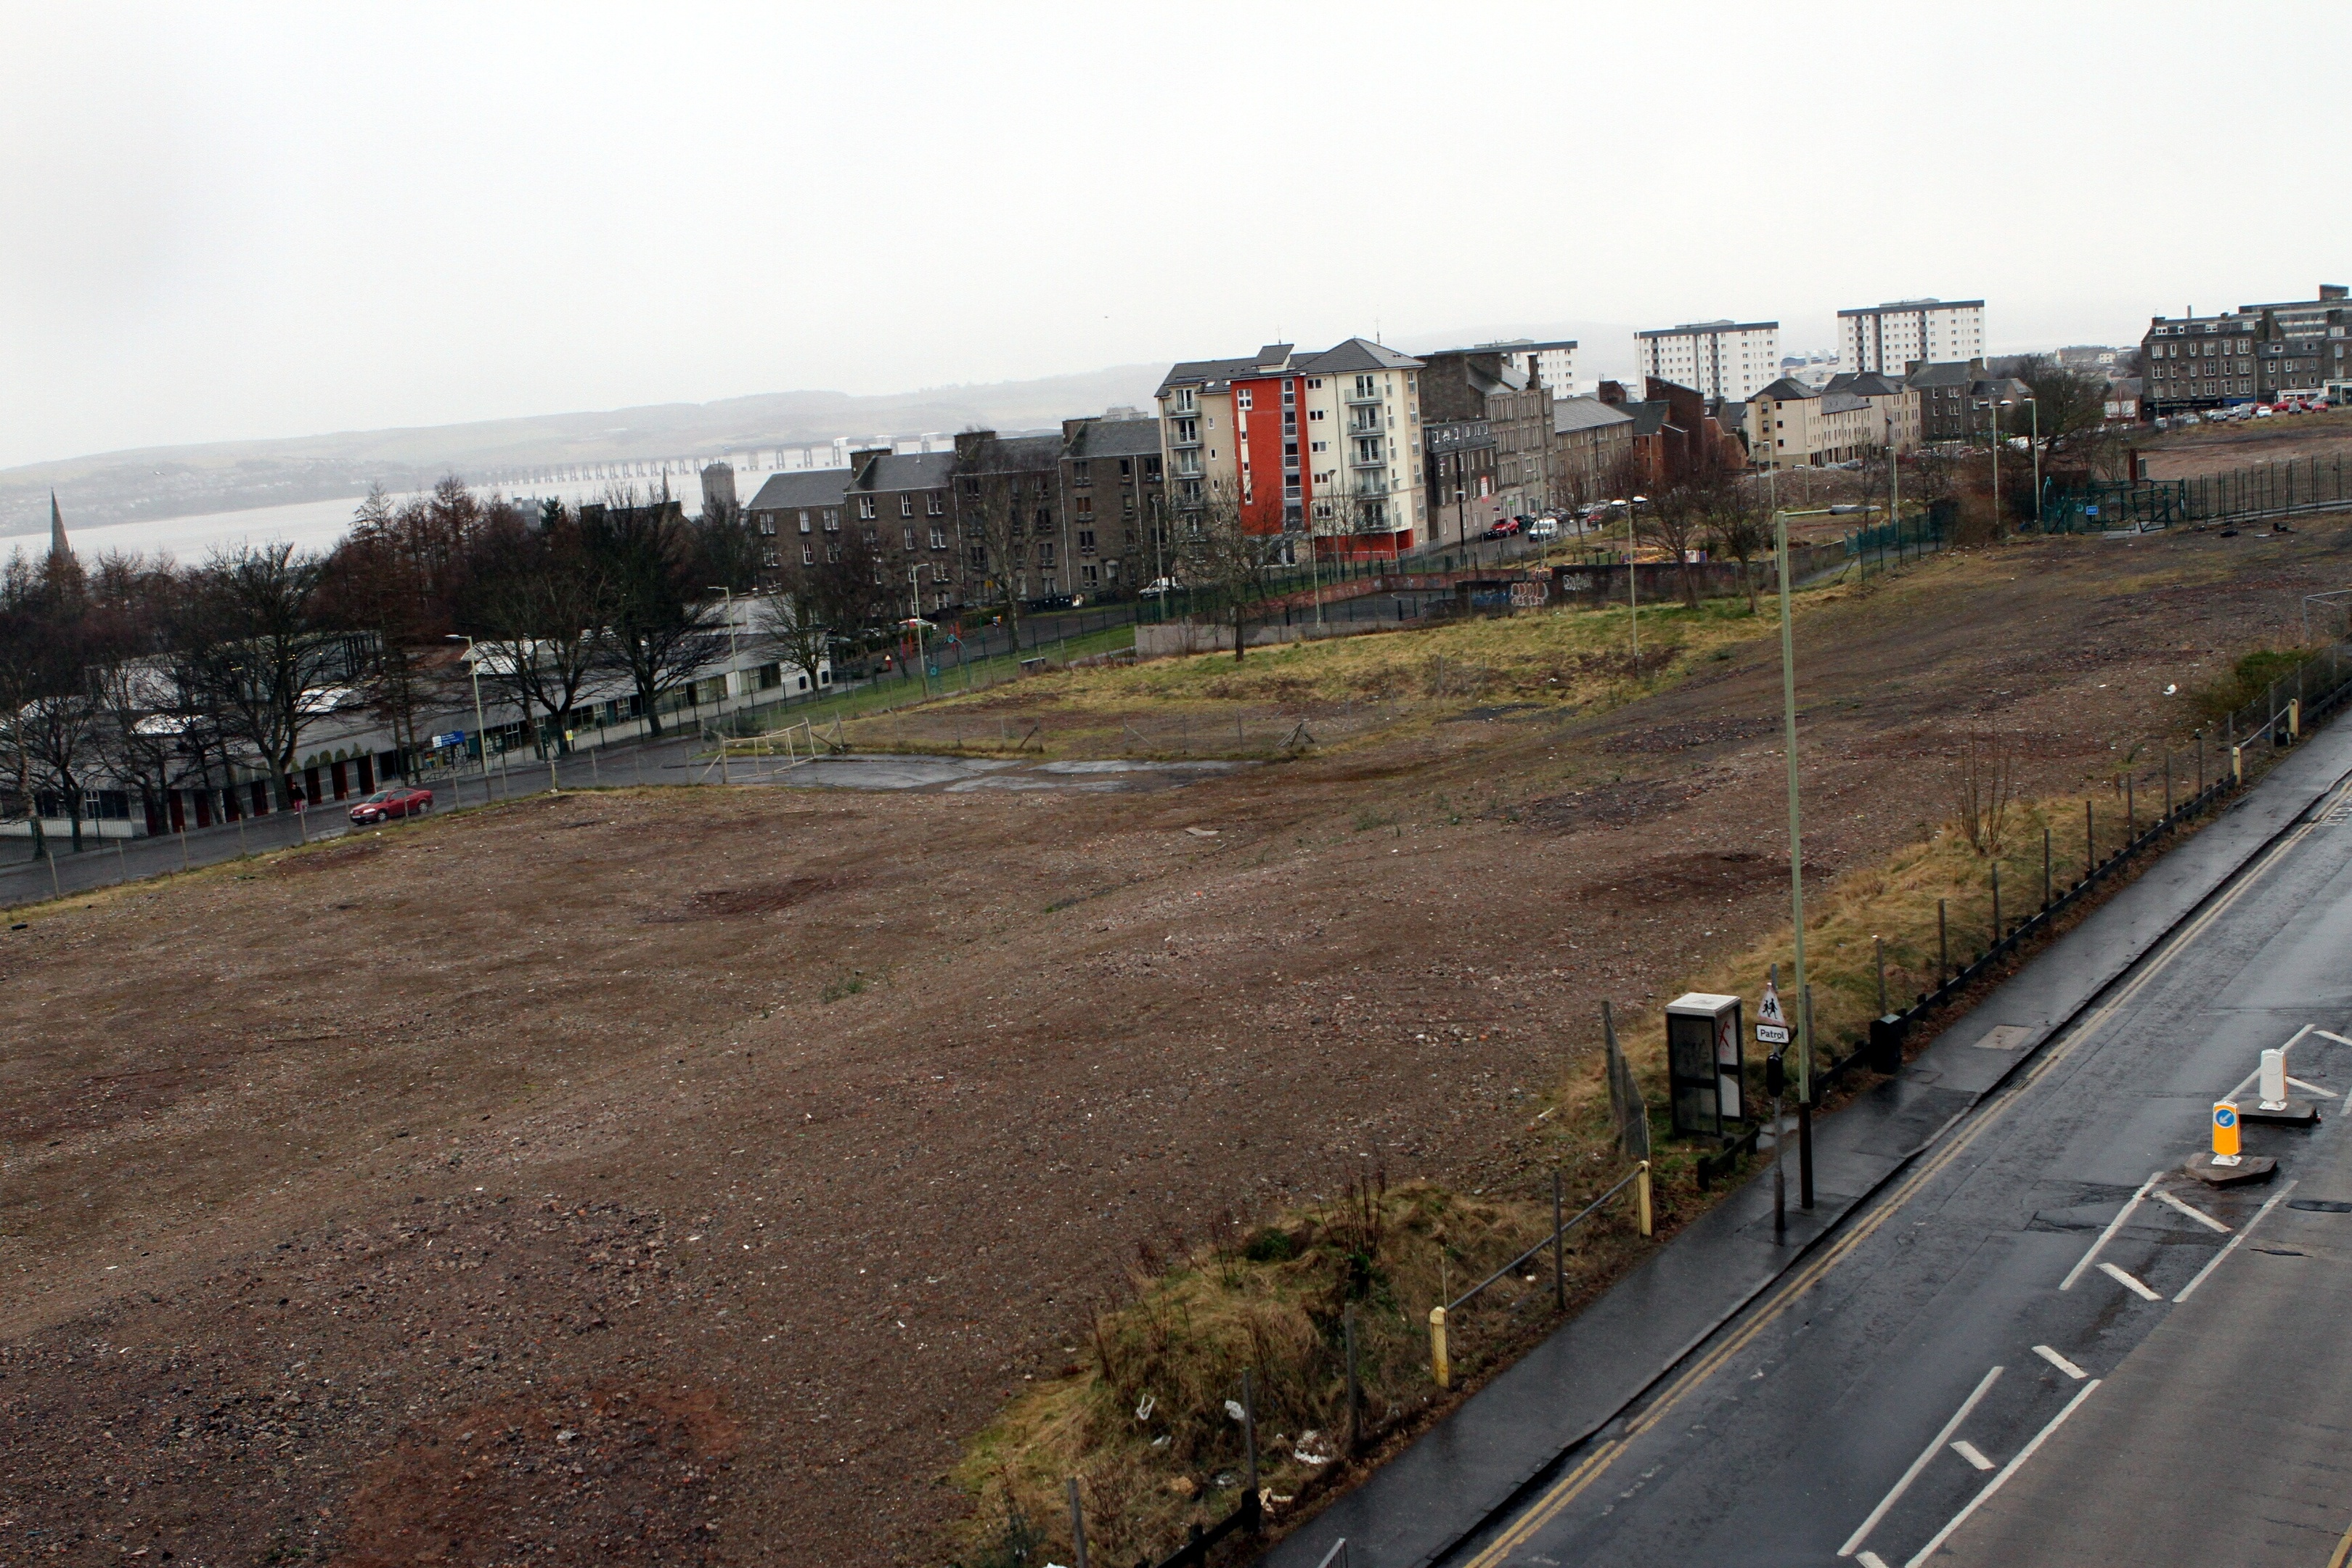 81 new homes will be built on the site once occupied by the Alexander Street multis.